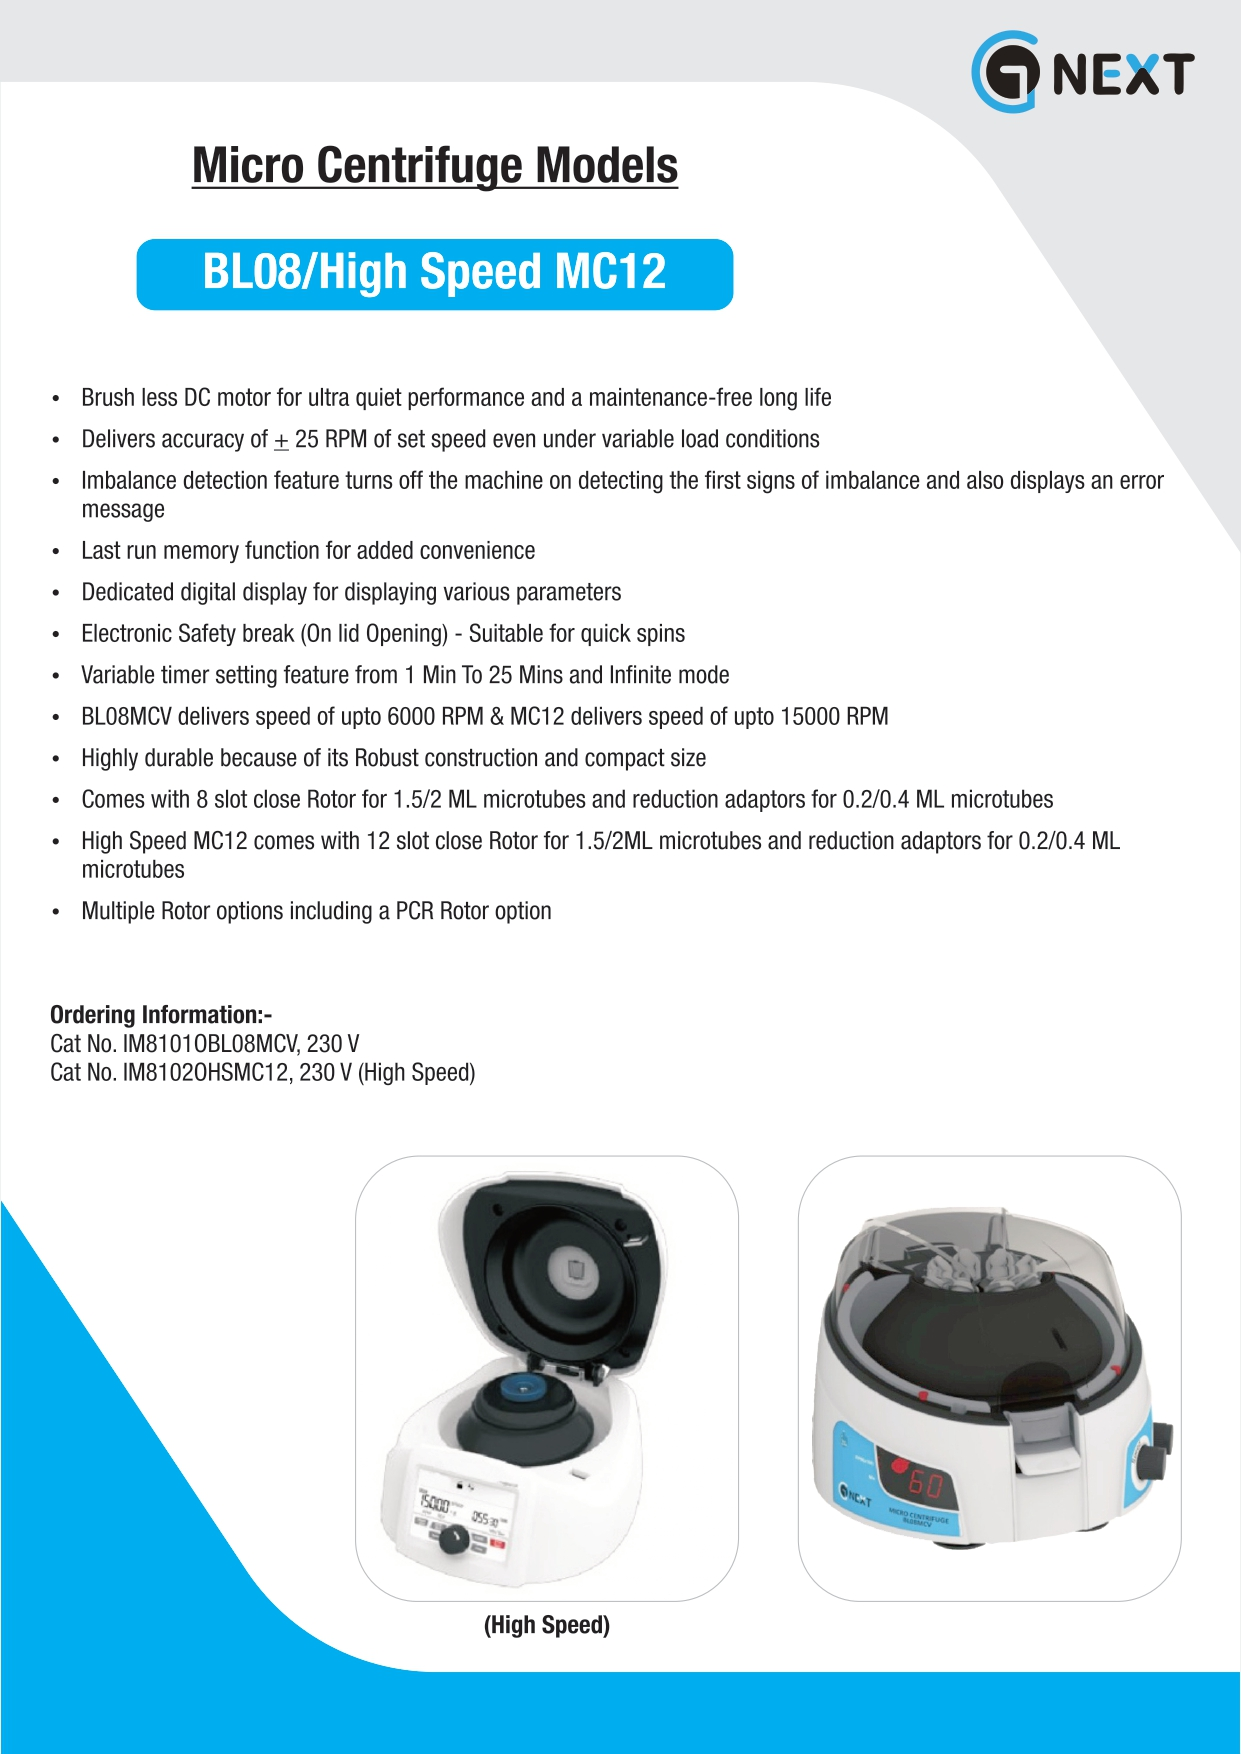 Micro Centrifuge Normal and High Speed